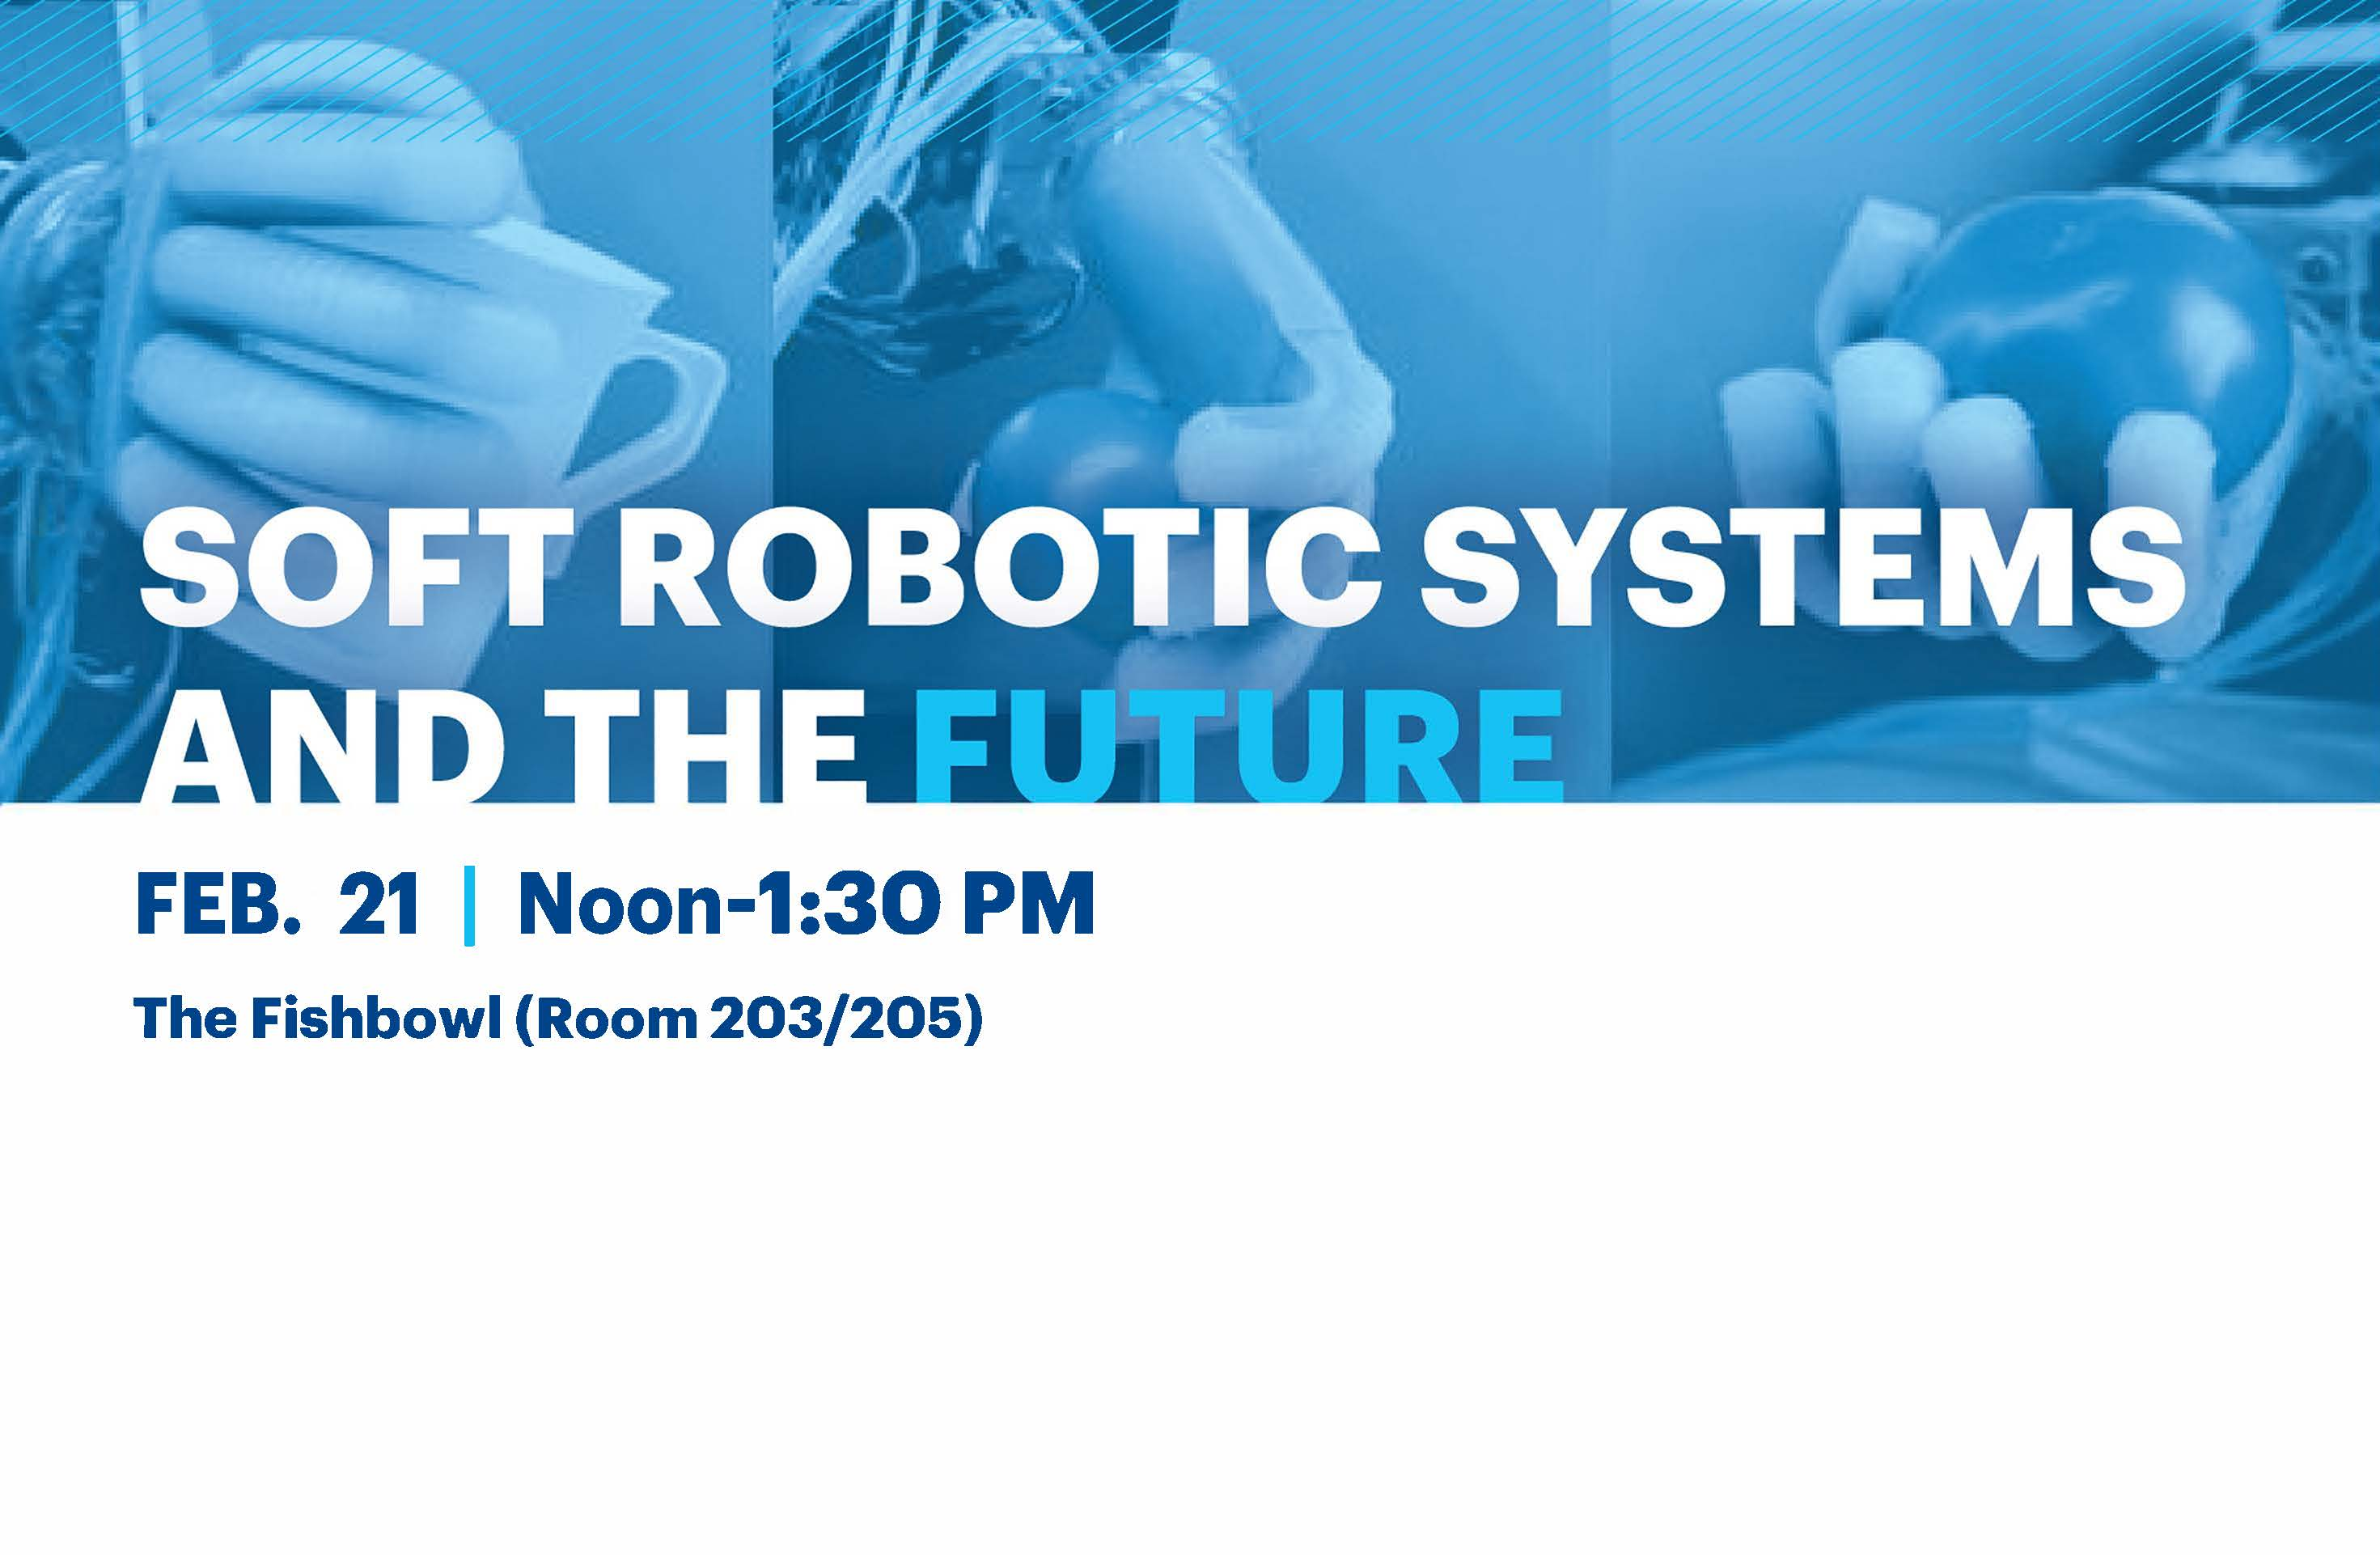 Soft Robotic Systems and The Future